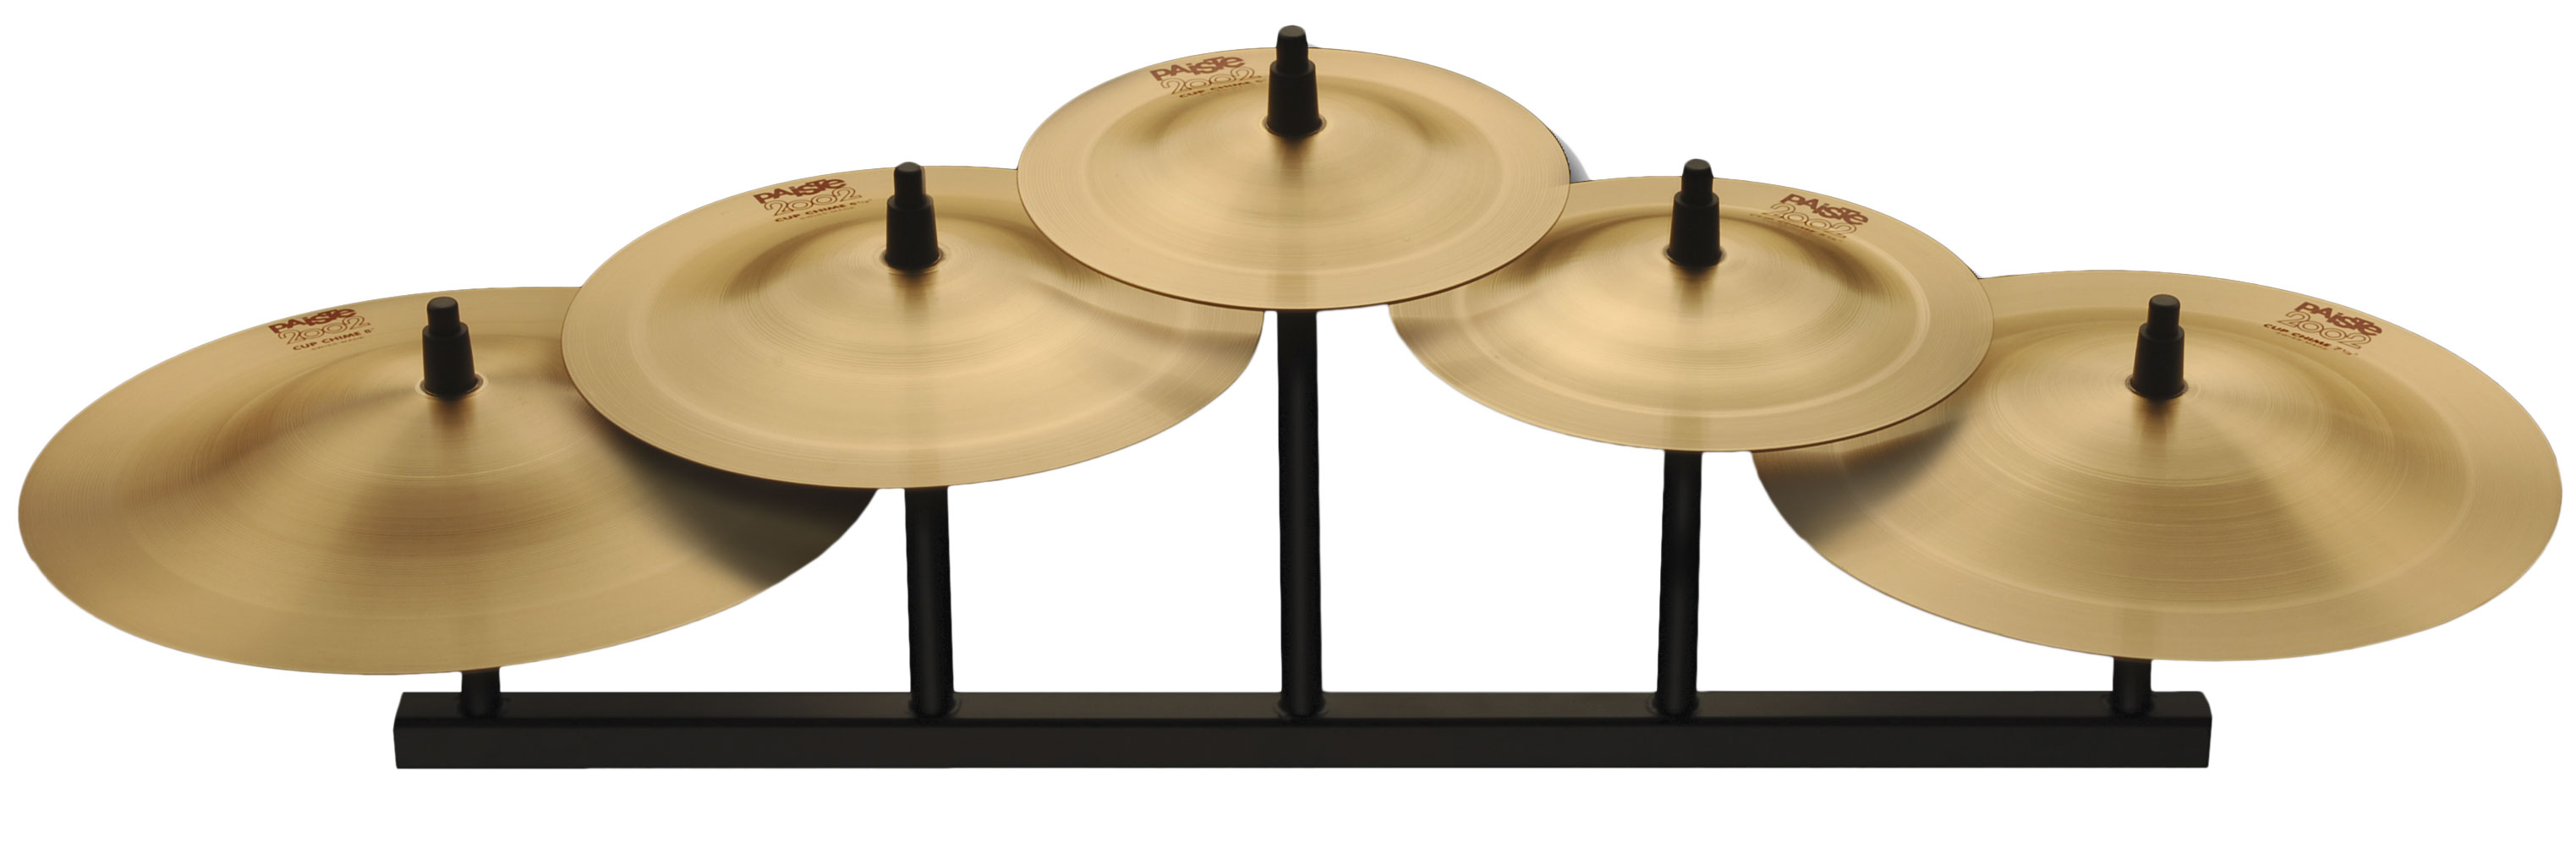 Paiste 2002 5-Piece Cup Chime Pack Cymbal Box Set